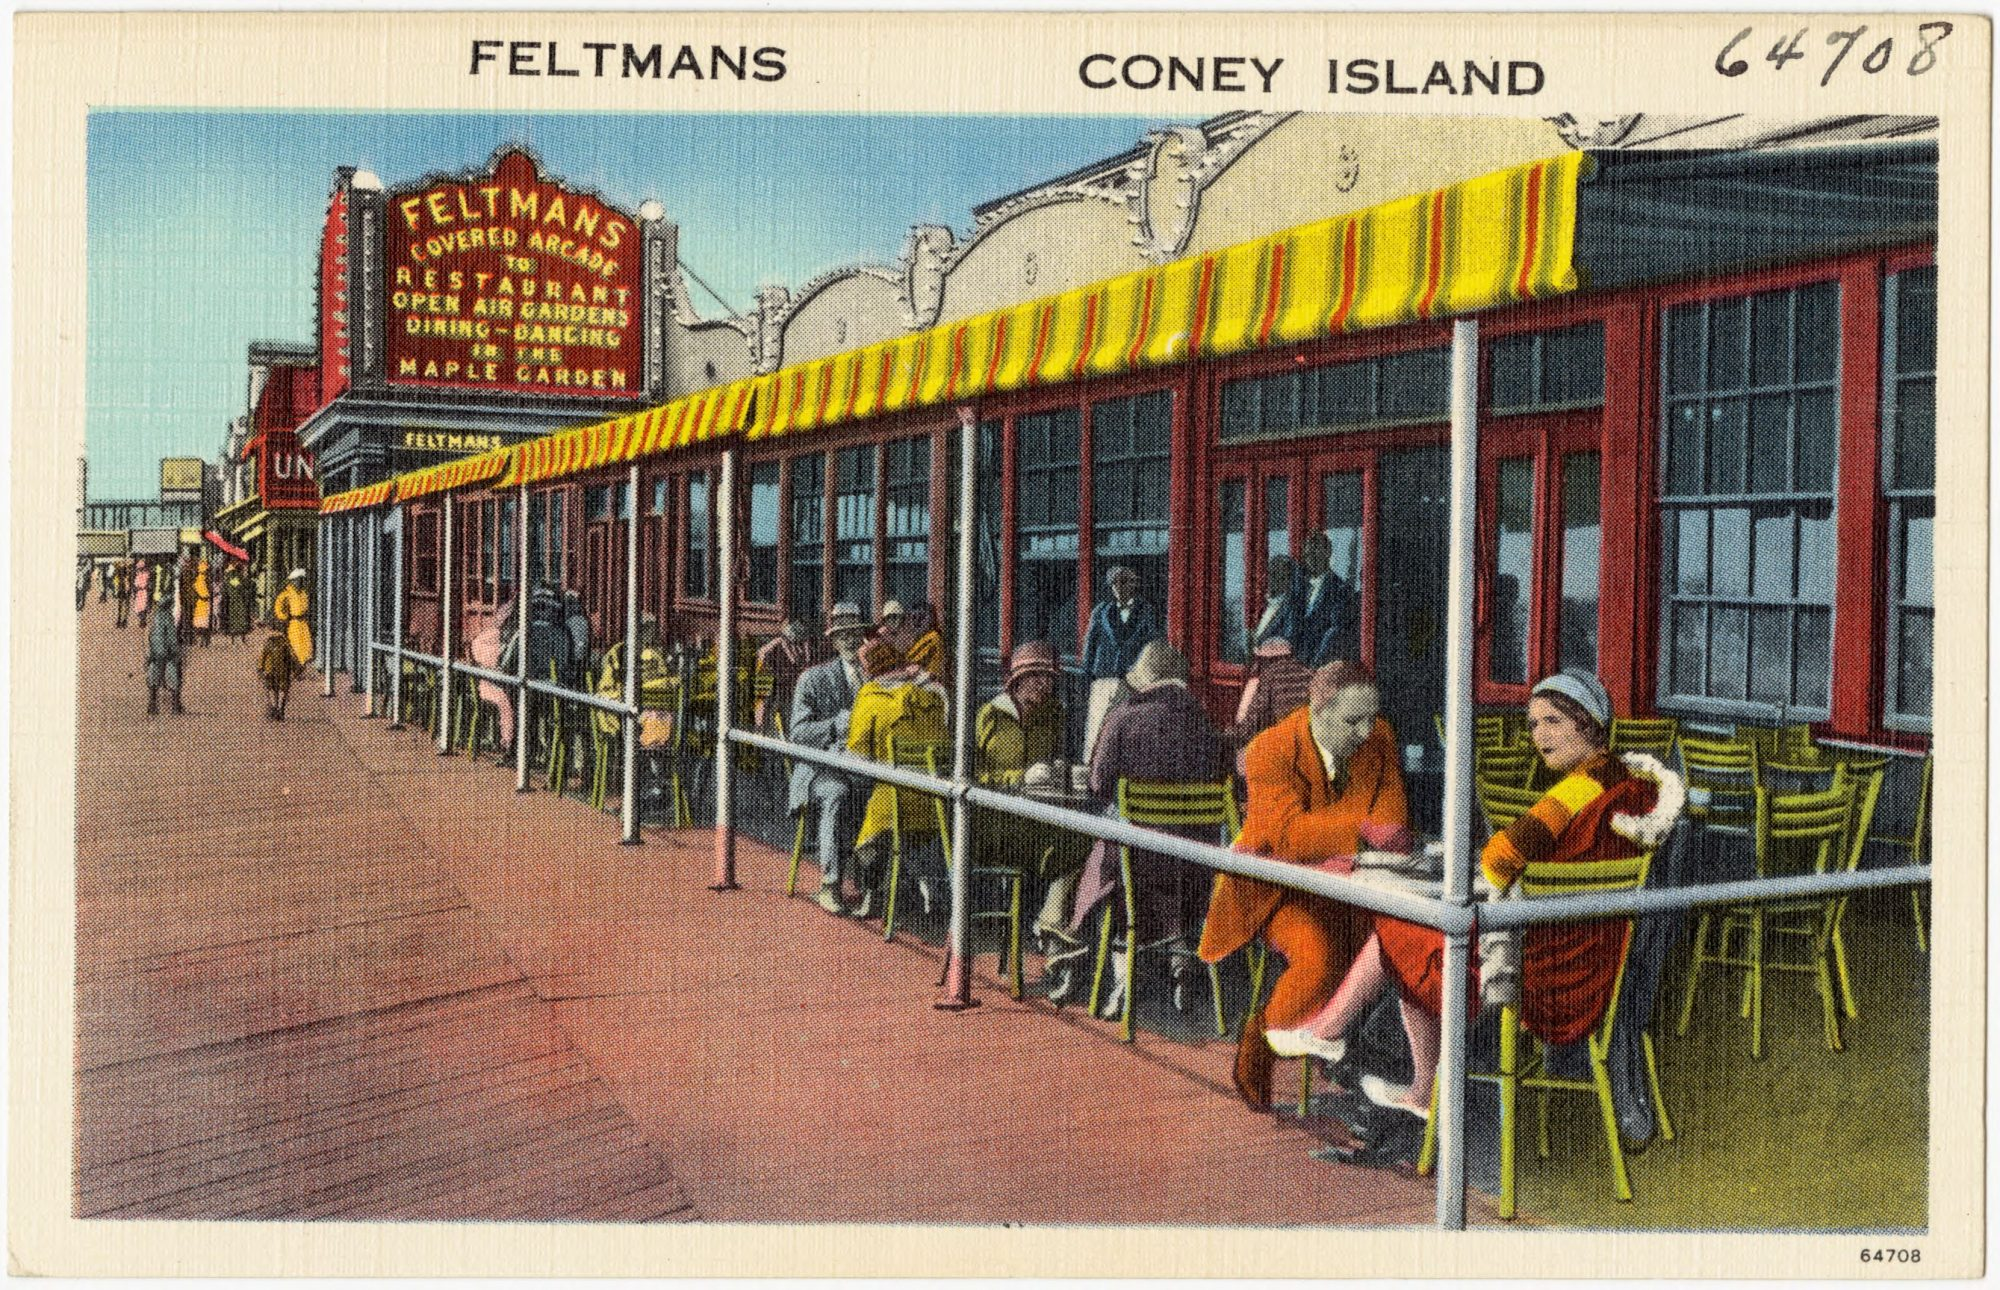 Feltman's of Coney Island _The Tichnor Brothers Collection at Boston Public Library_1930_1945.jpg